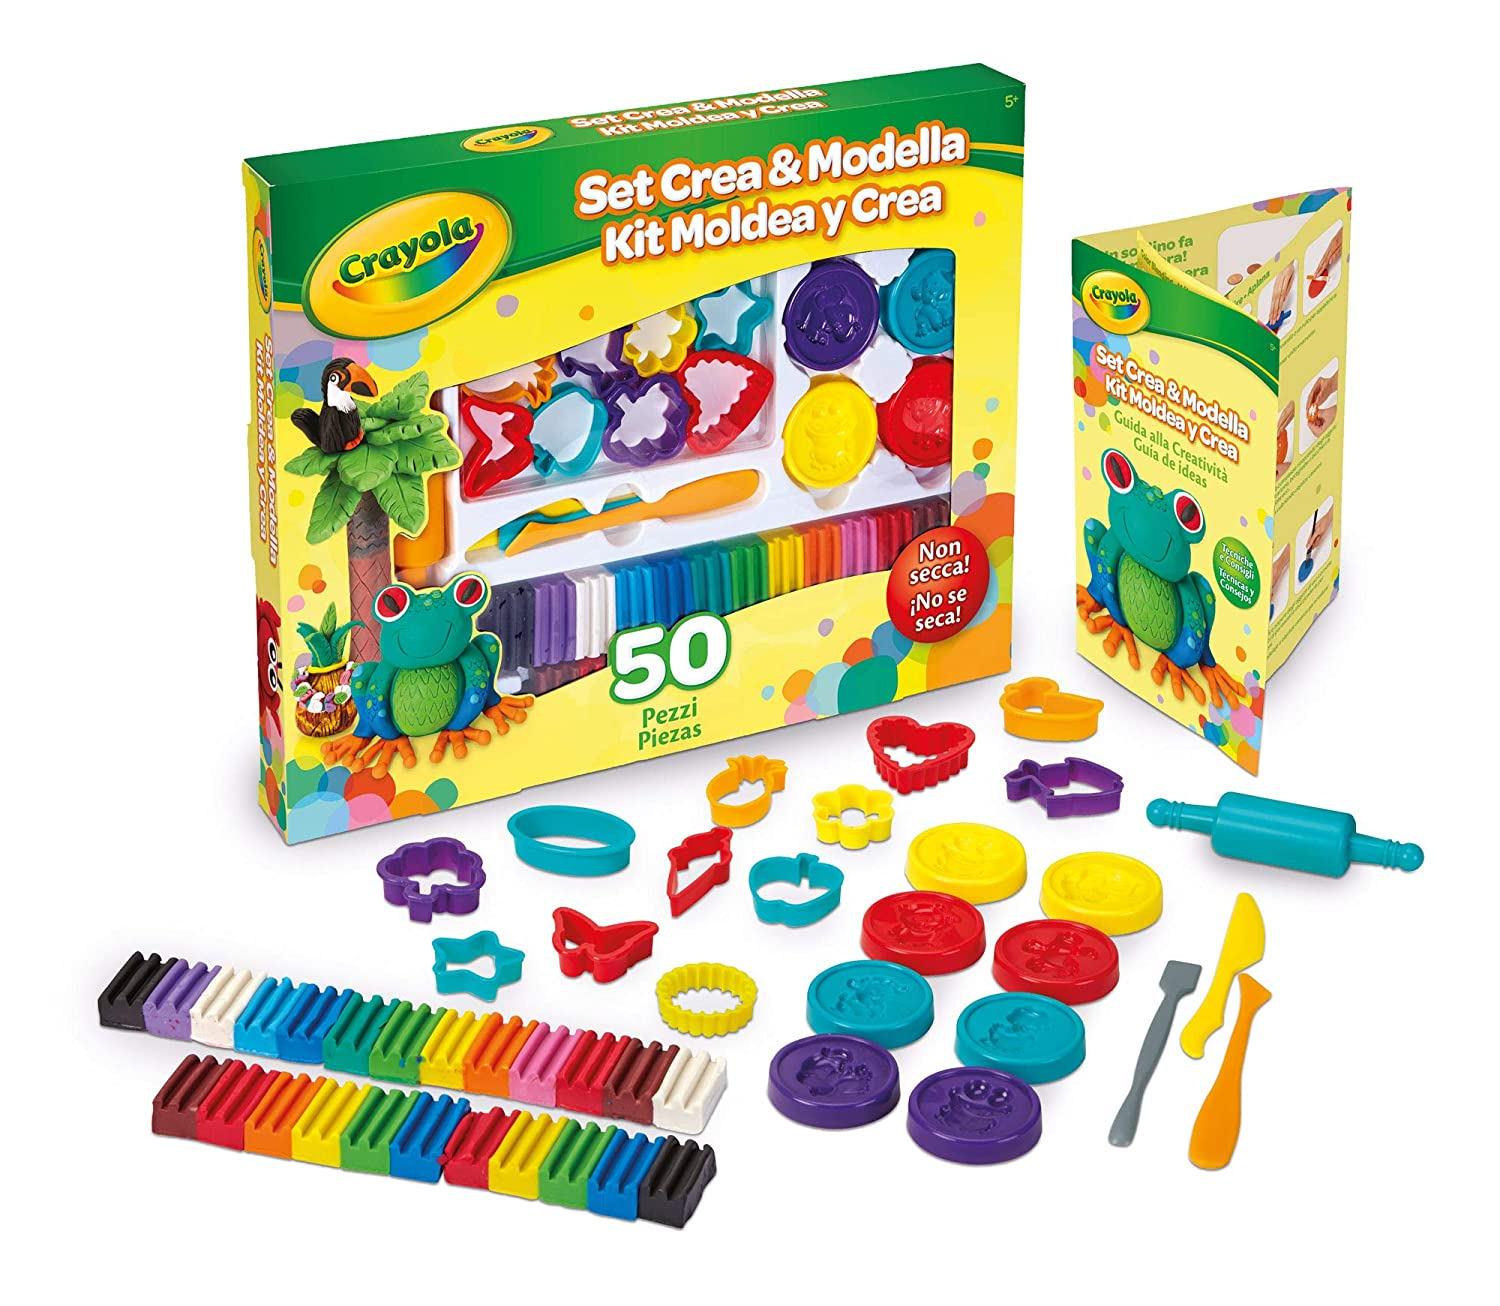 Modeling Tools Includes Non-Toxic Modeling Clay in Classic Crayola Colors Crayola Deluxe 50 Piece Modeling Clay Art Kit Art Gift for Kids 5 /& Up Shape Molds /& Rolling Pins Binney /& Smith 57-0321 Shape Cutters